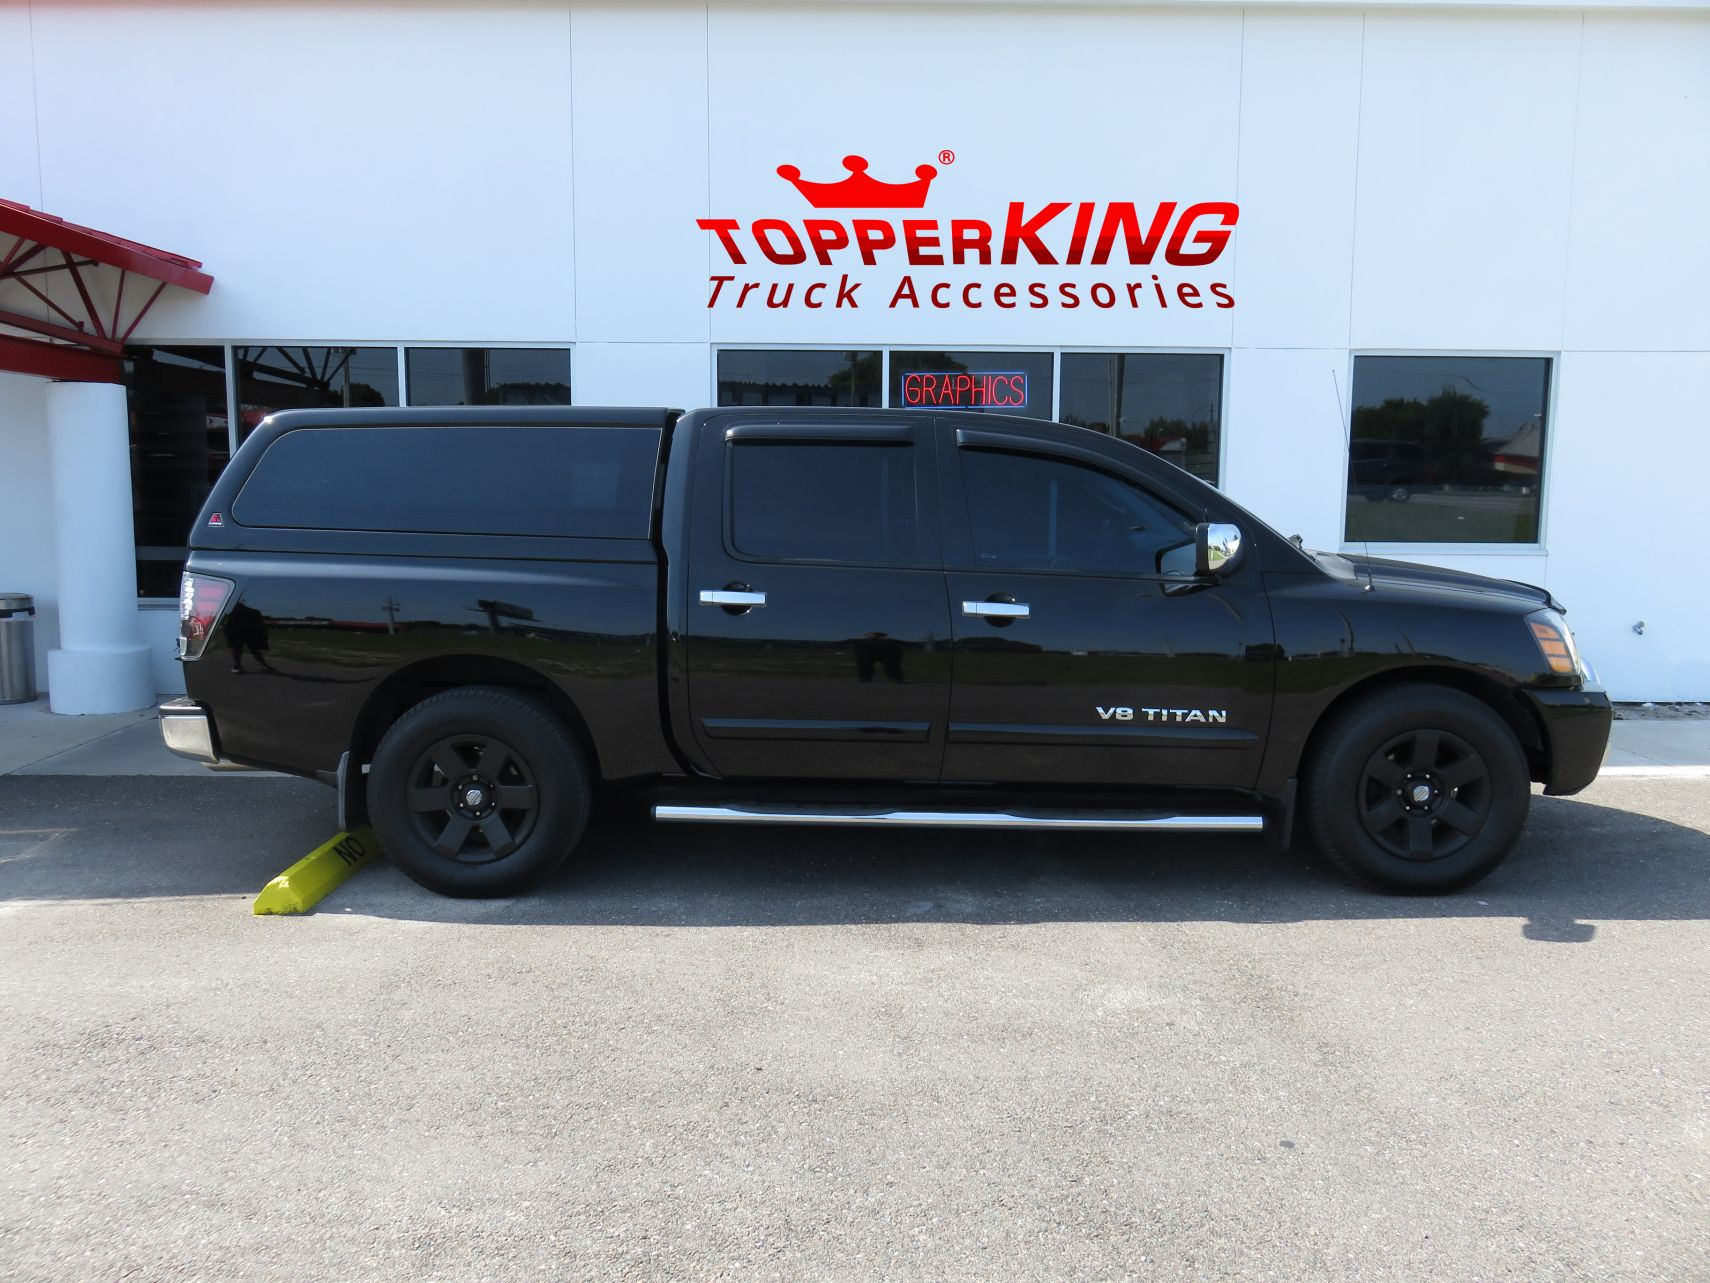 Nissan Titan LEER 100XQ fiberglass topper and Stainless Steel Nerf Bars by TopperKING in Brandon, FL 813-689-2449 Call today to start on your truck!